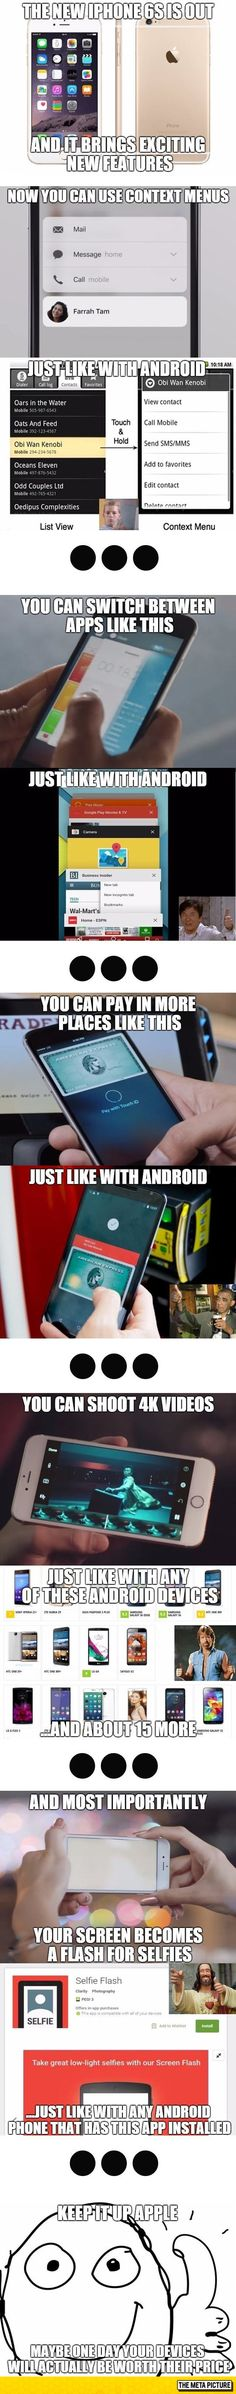 Apple. All they do is copy. Android is WAYYY better.